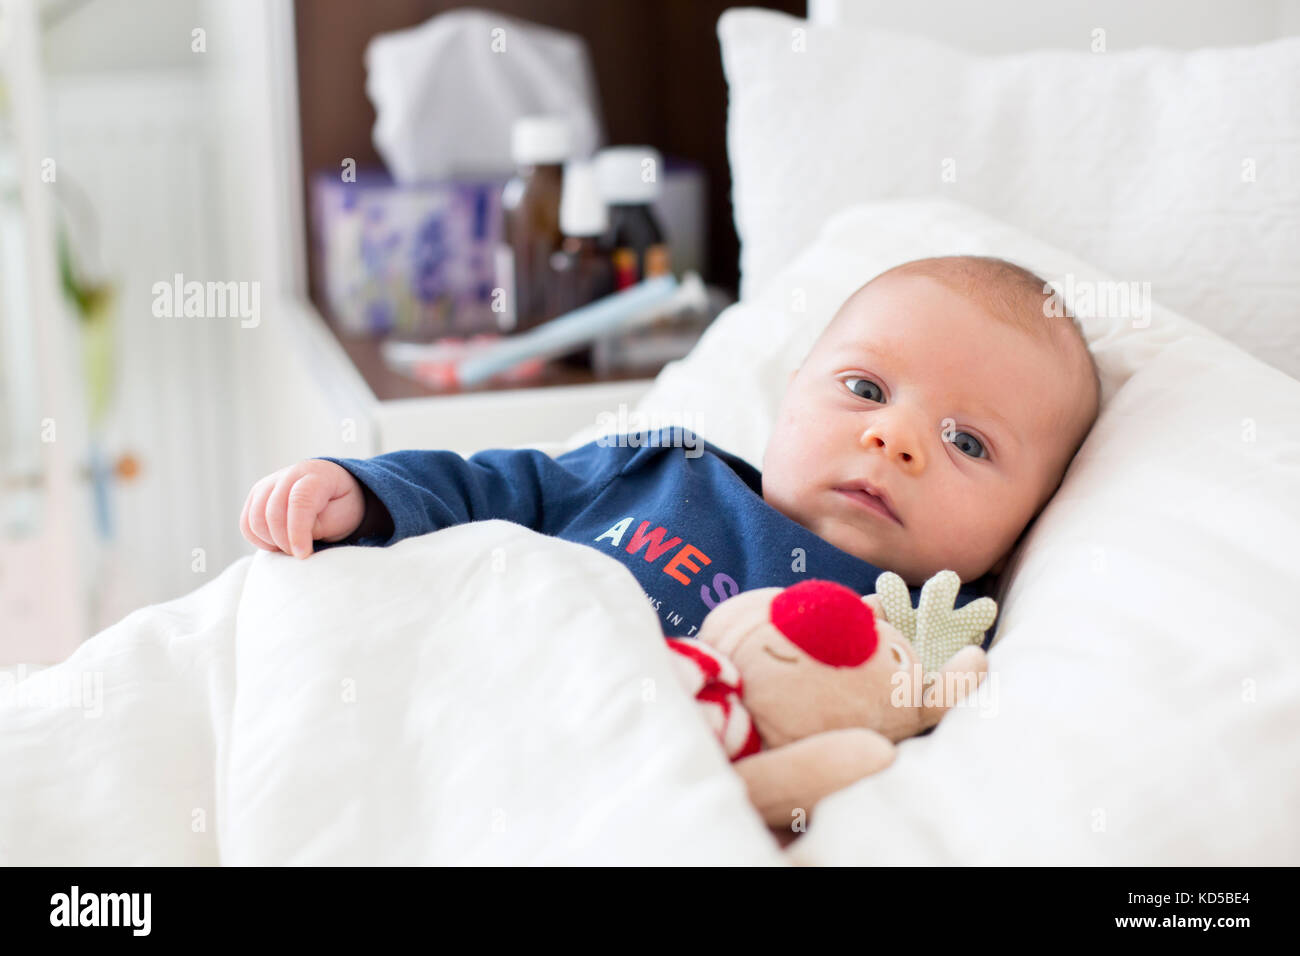 Newborn Infant With Fever Cute Newborn Baby Boy Lying In Bed With Cold And Fever